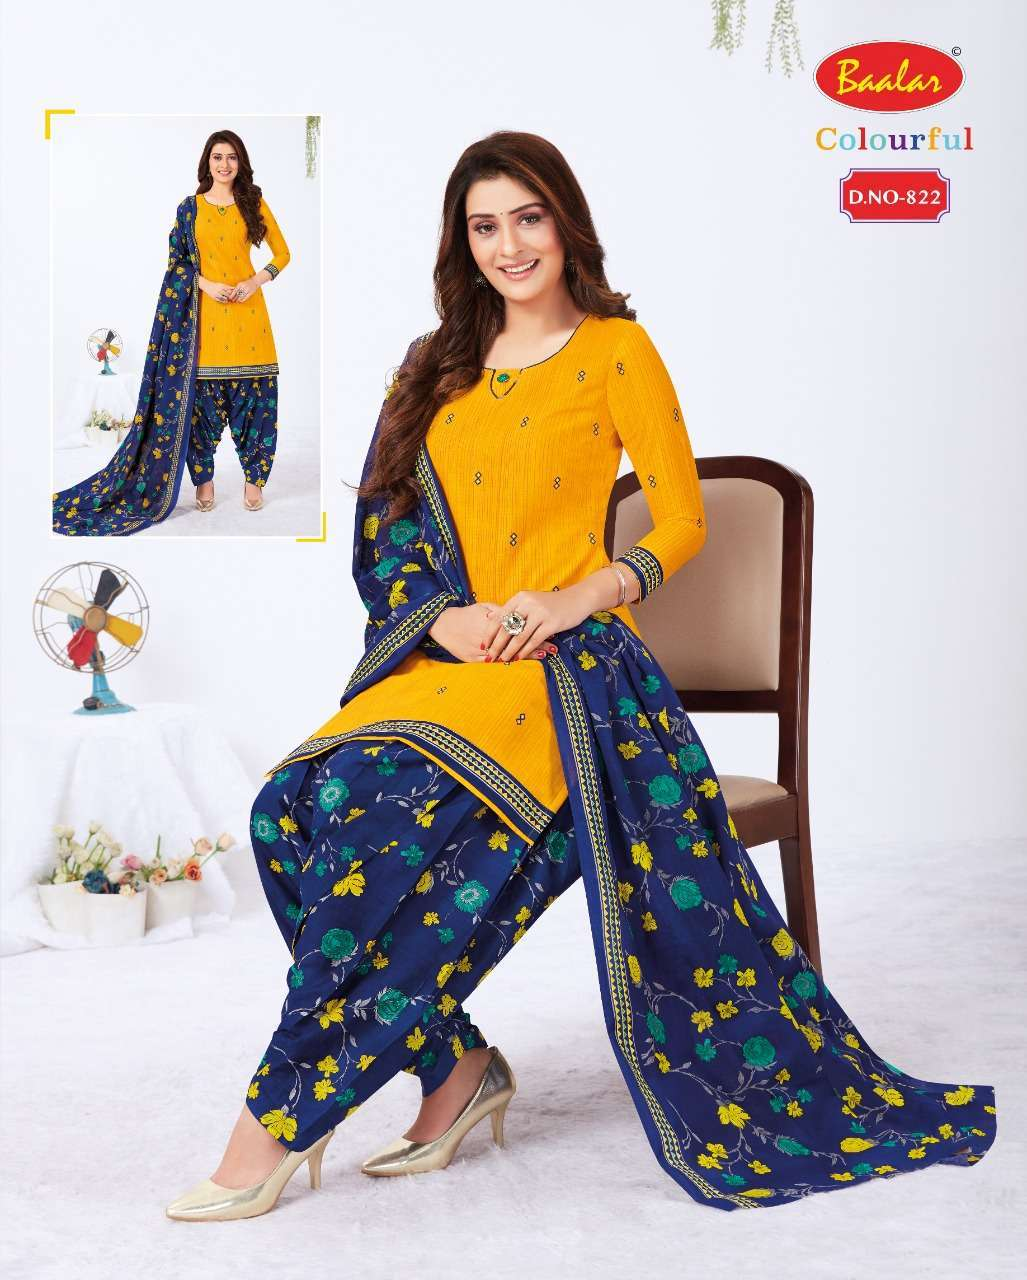 Baalar Colourful Vol 8 Cotton Printed Suits Collection